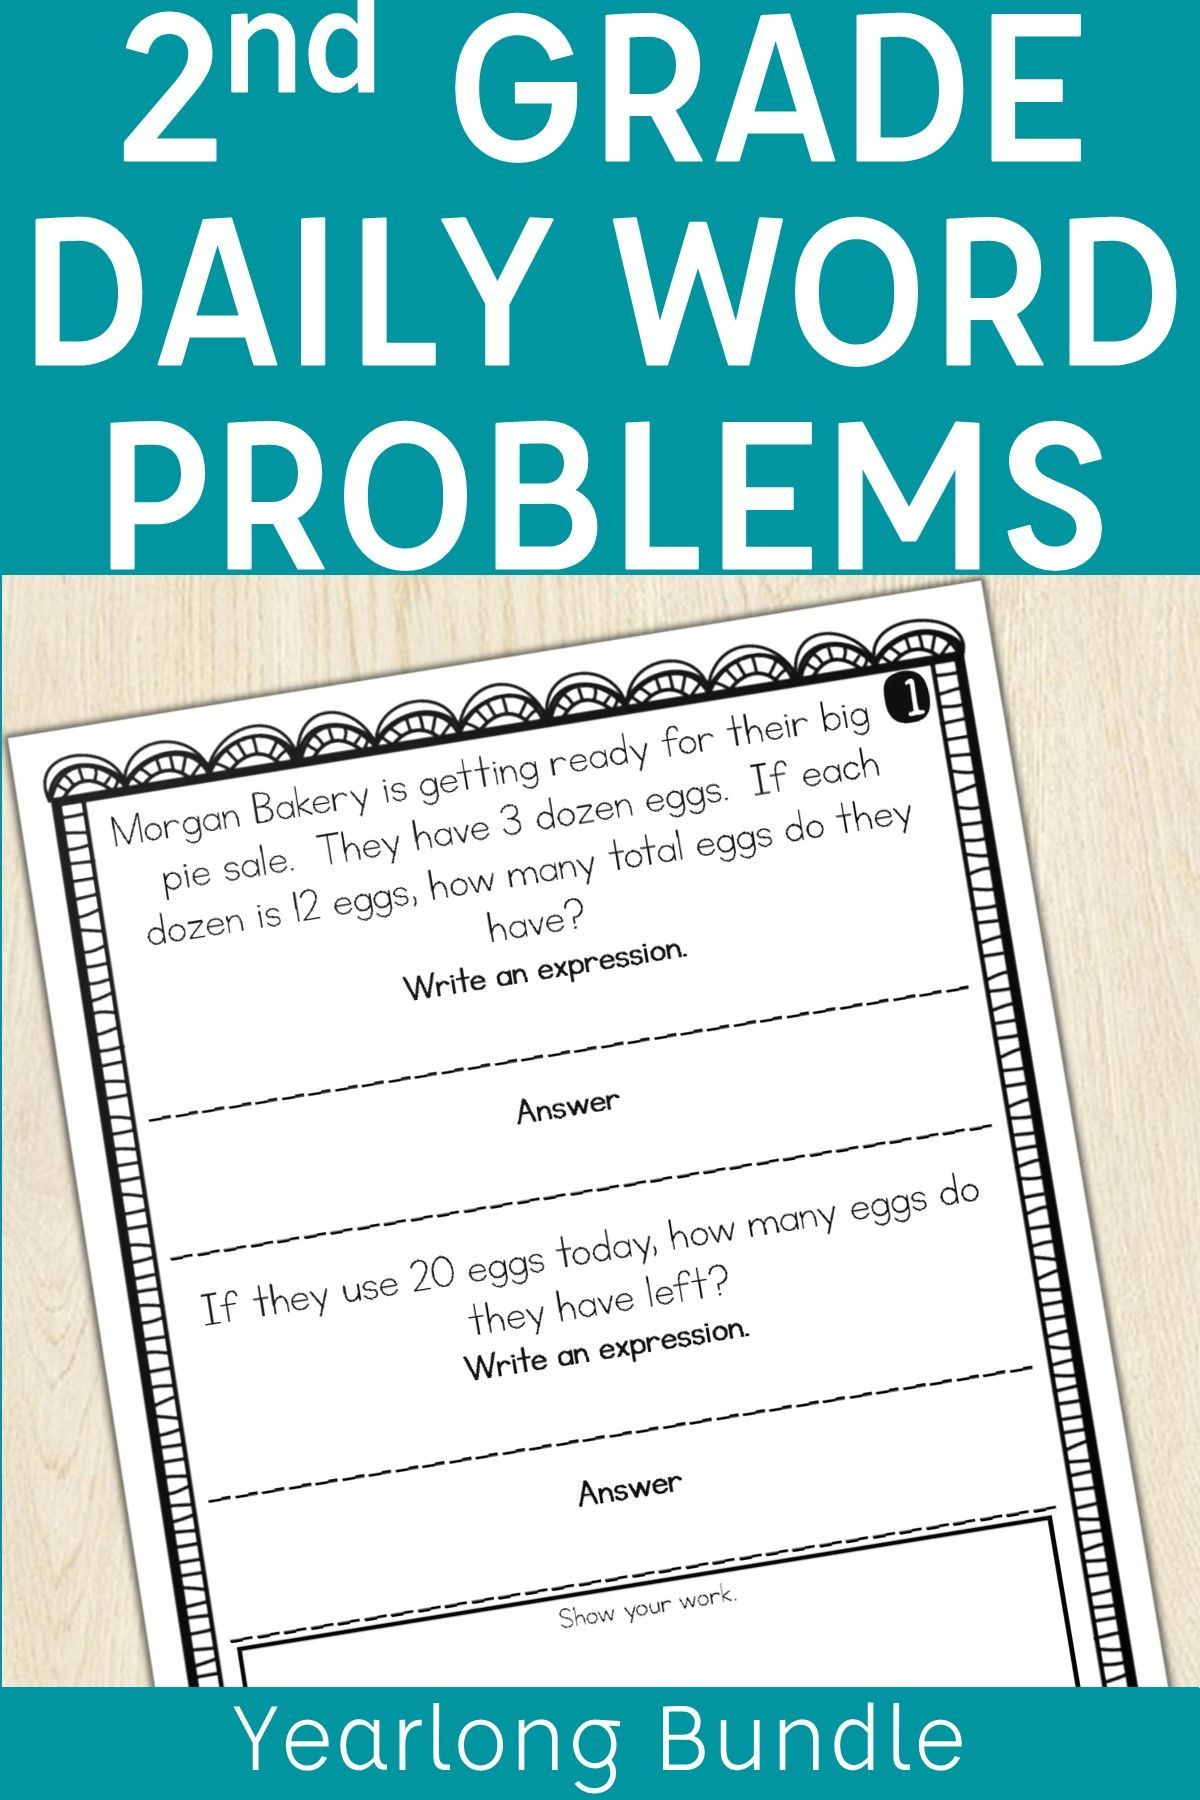 Build Students Problem Solving Skills In Second Grade With These Problem Of The Day Word Problems This Ye Word Problems Addition Word Problems Story Problems [ 1800 x 1200 Pixel ]